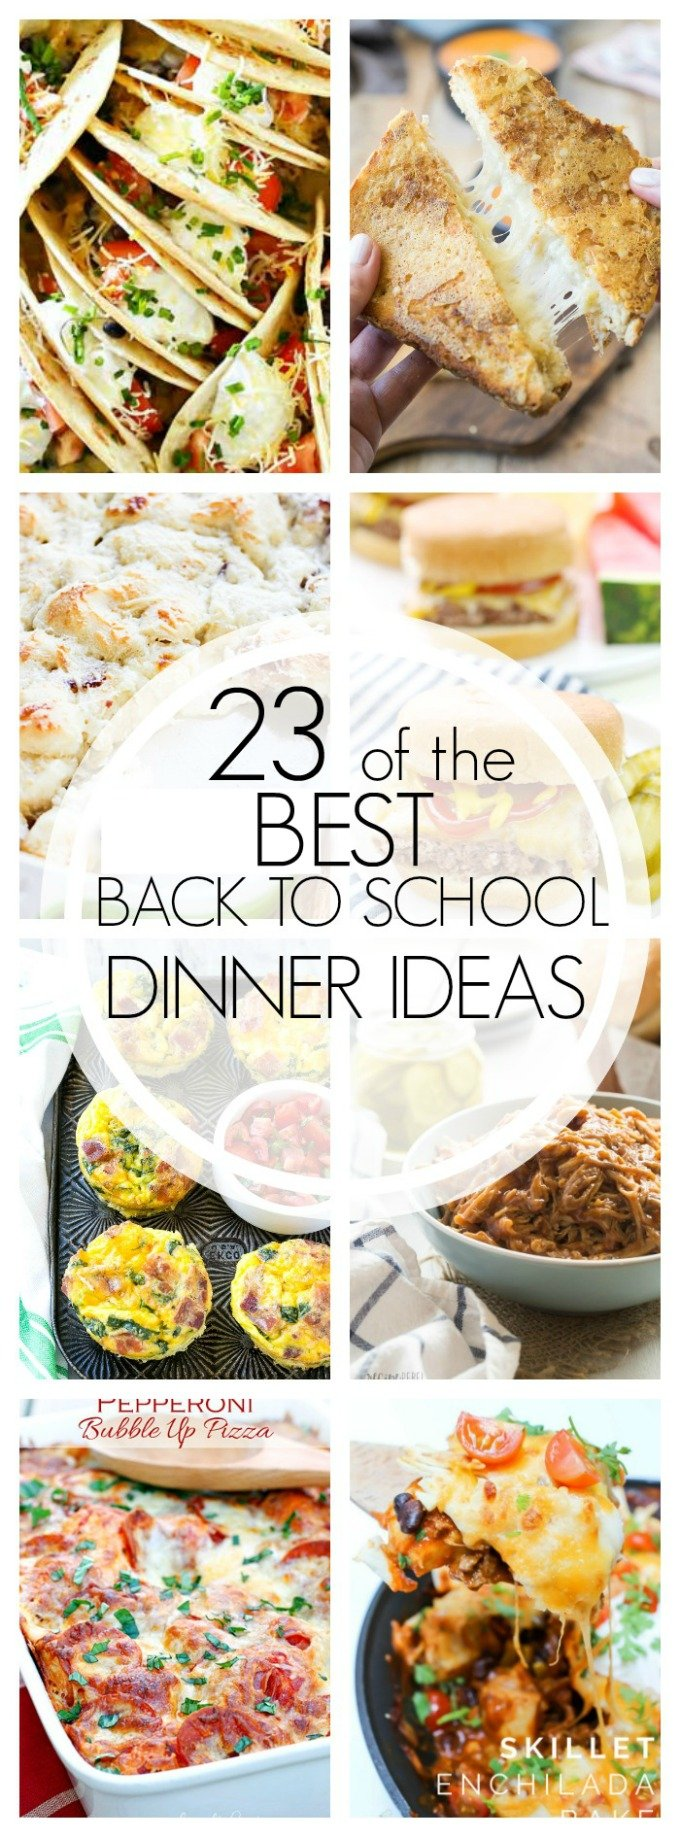 With fall right around the corner, having easy meals for school nights is essential! Here are the best back to school dinner ideas!